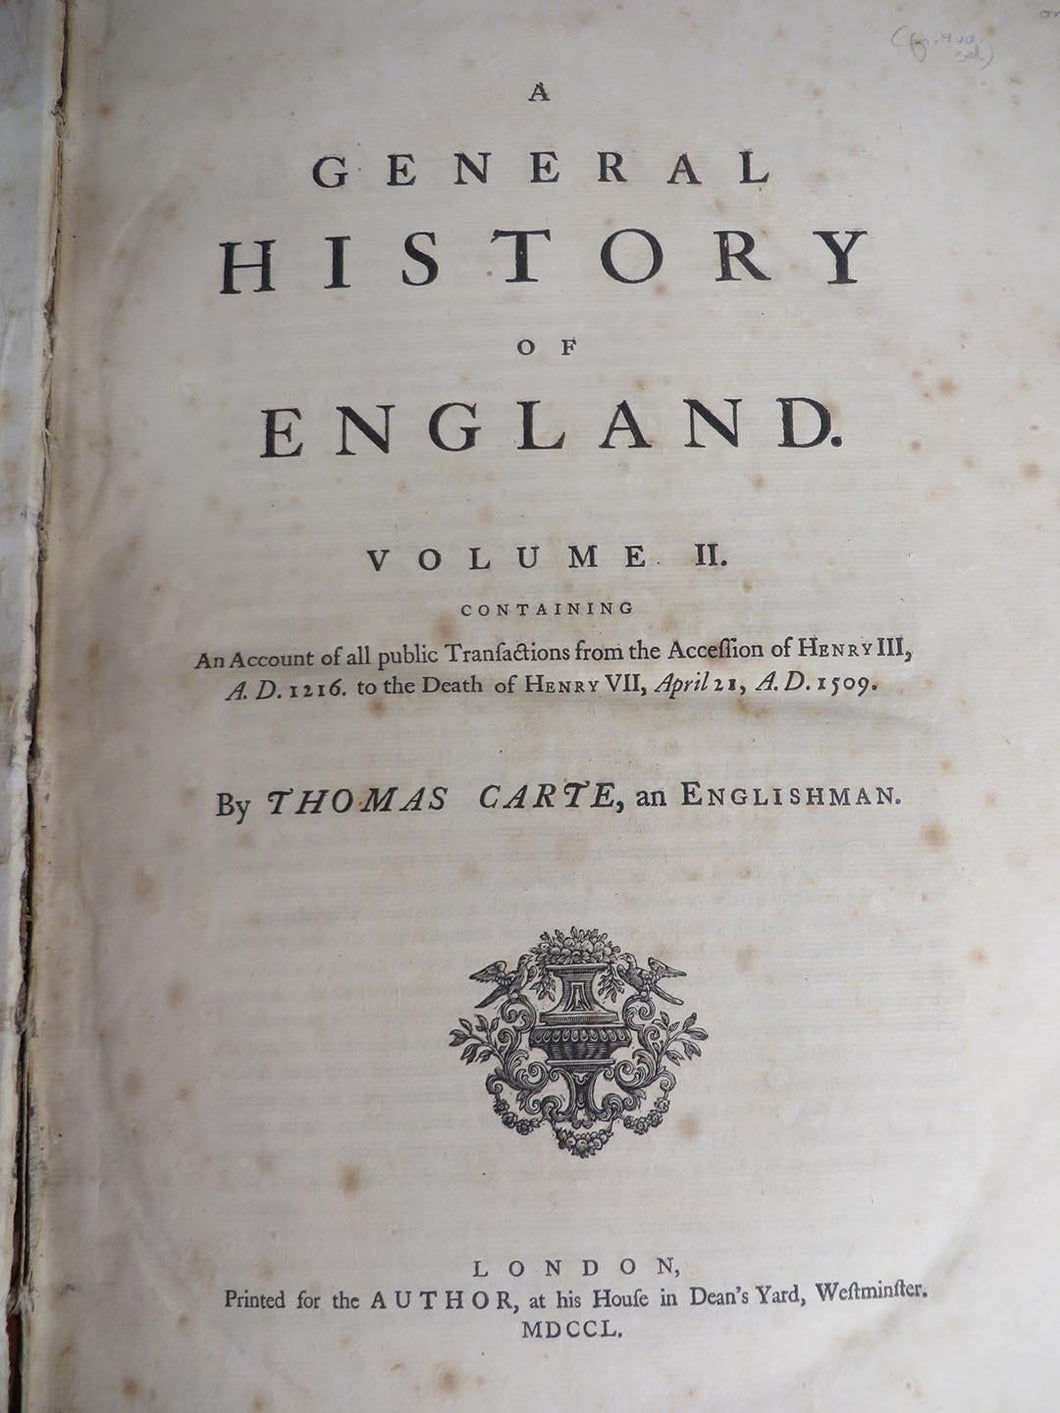 A General History of England Volume II